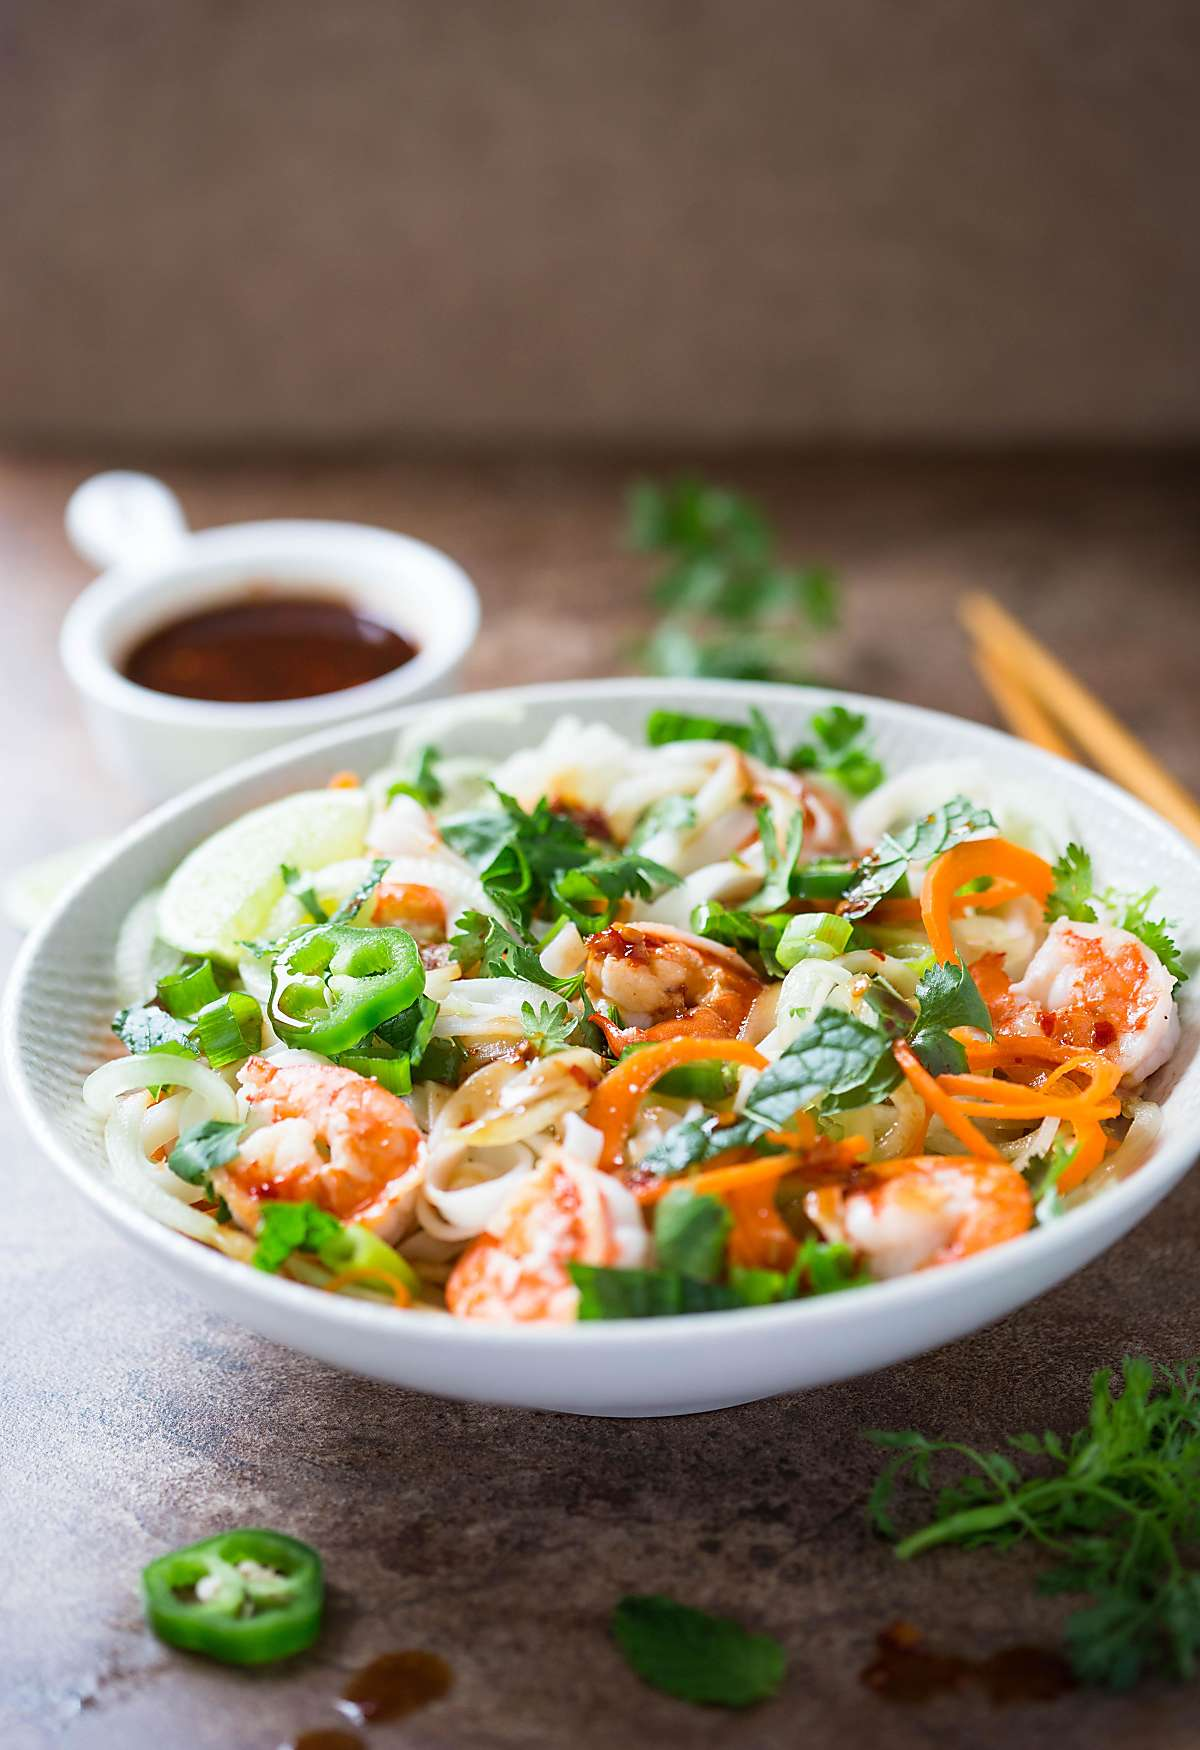 Vietnamese summer rolls salad with chili garlic and soy sauce dressing